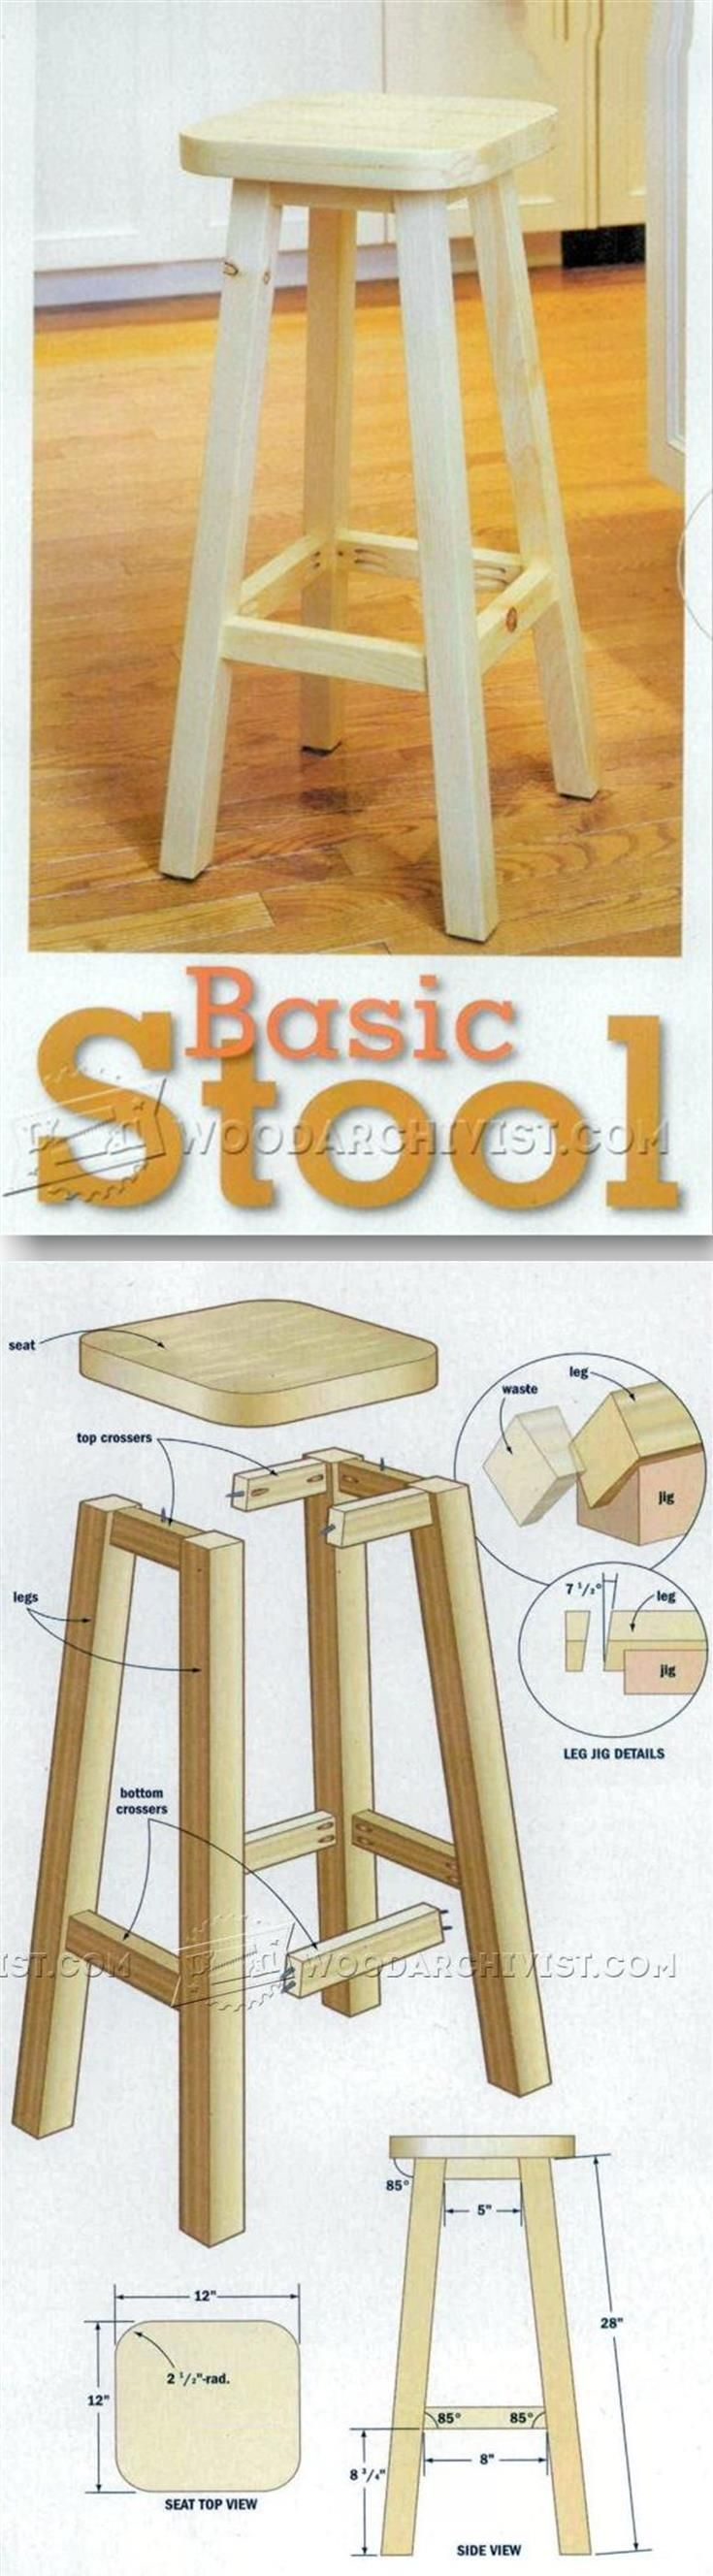 Kitchen Stool Plans Furniture Plans And Projects